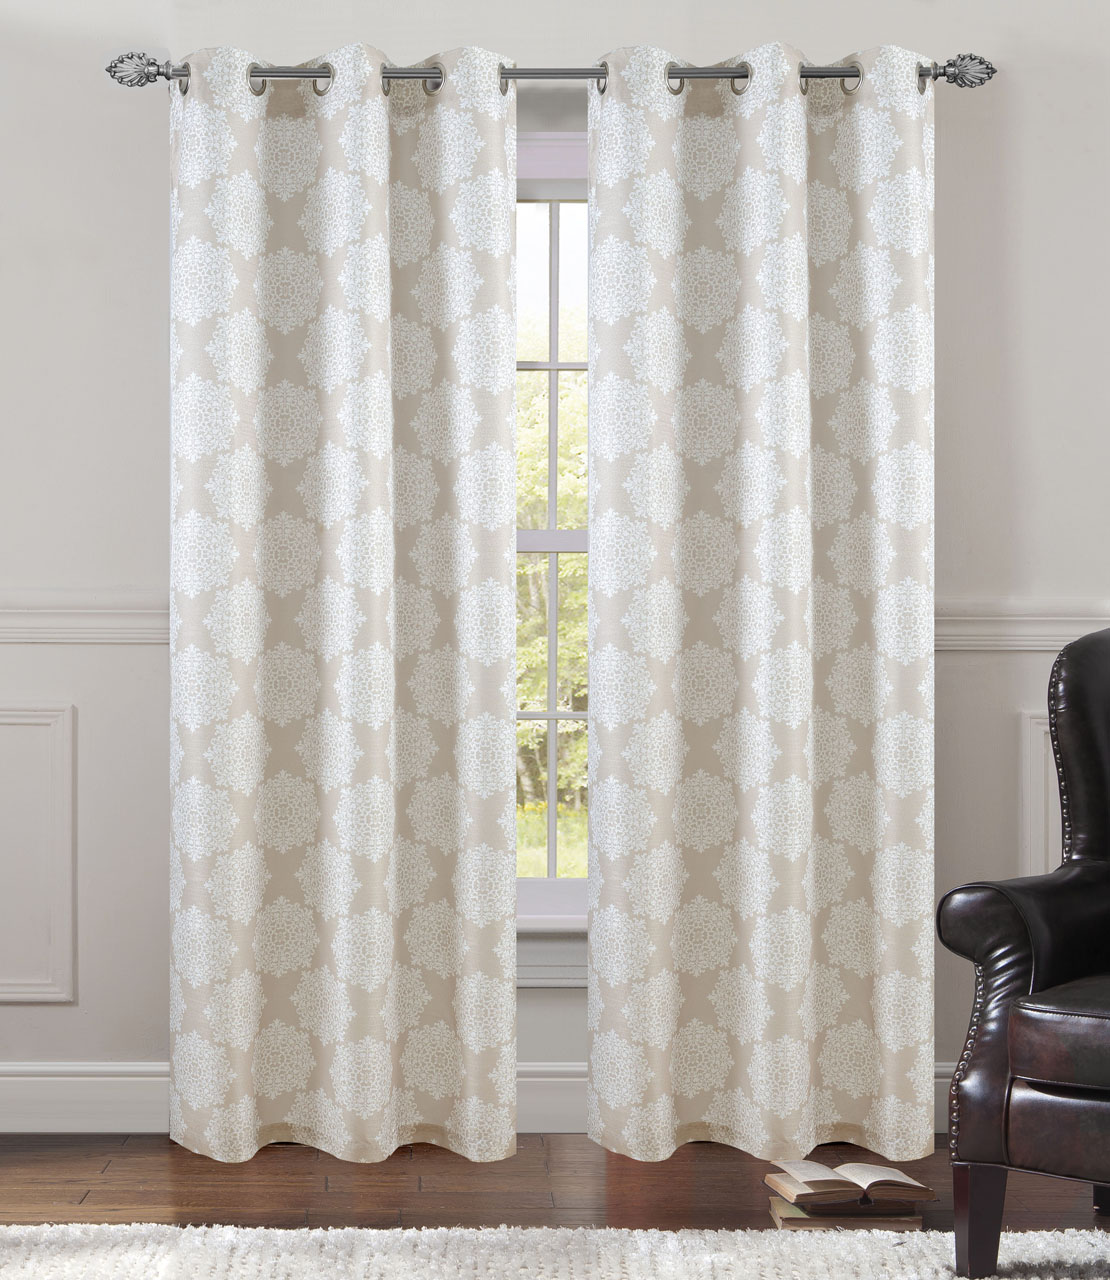 5 Panel Window : Pair of atlantis window curtain panels w grommets